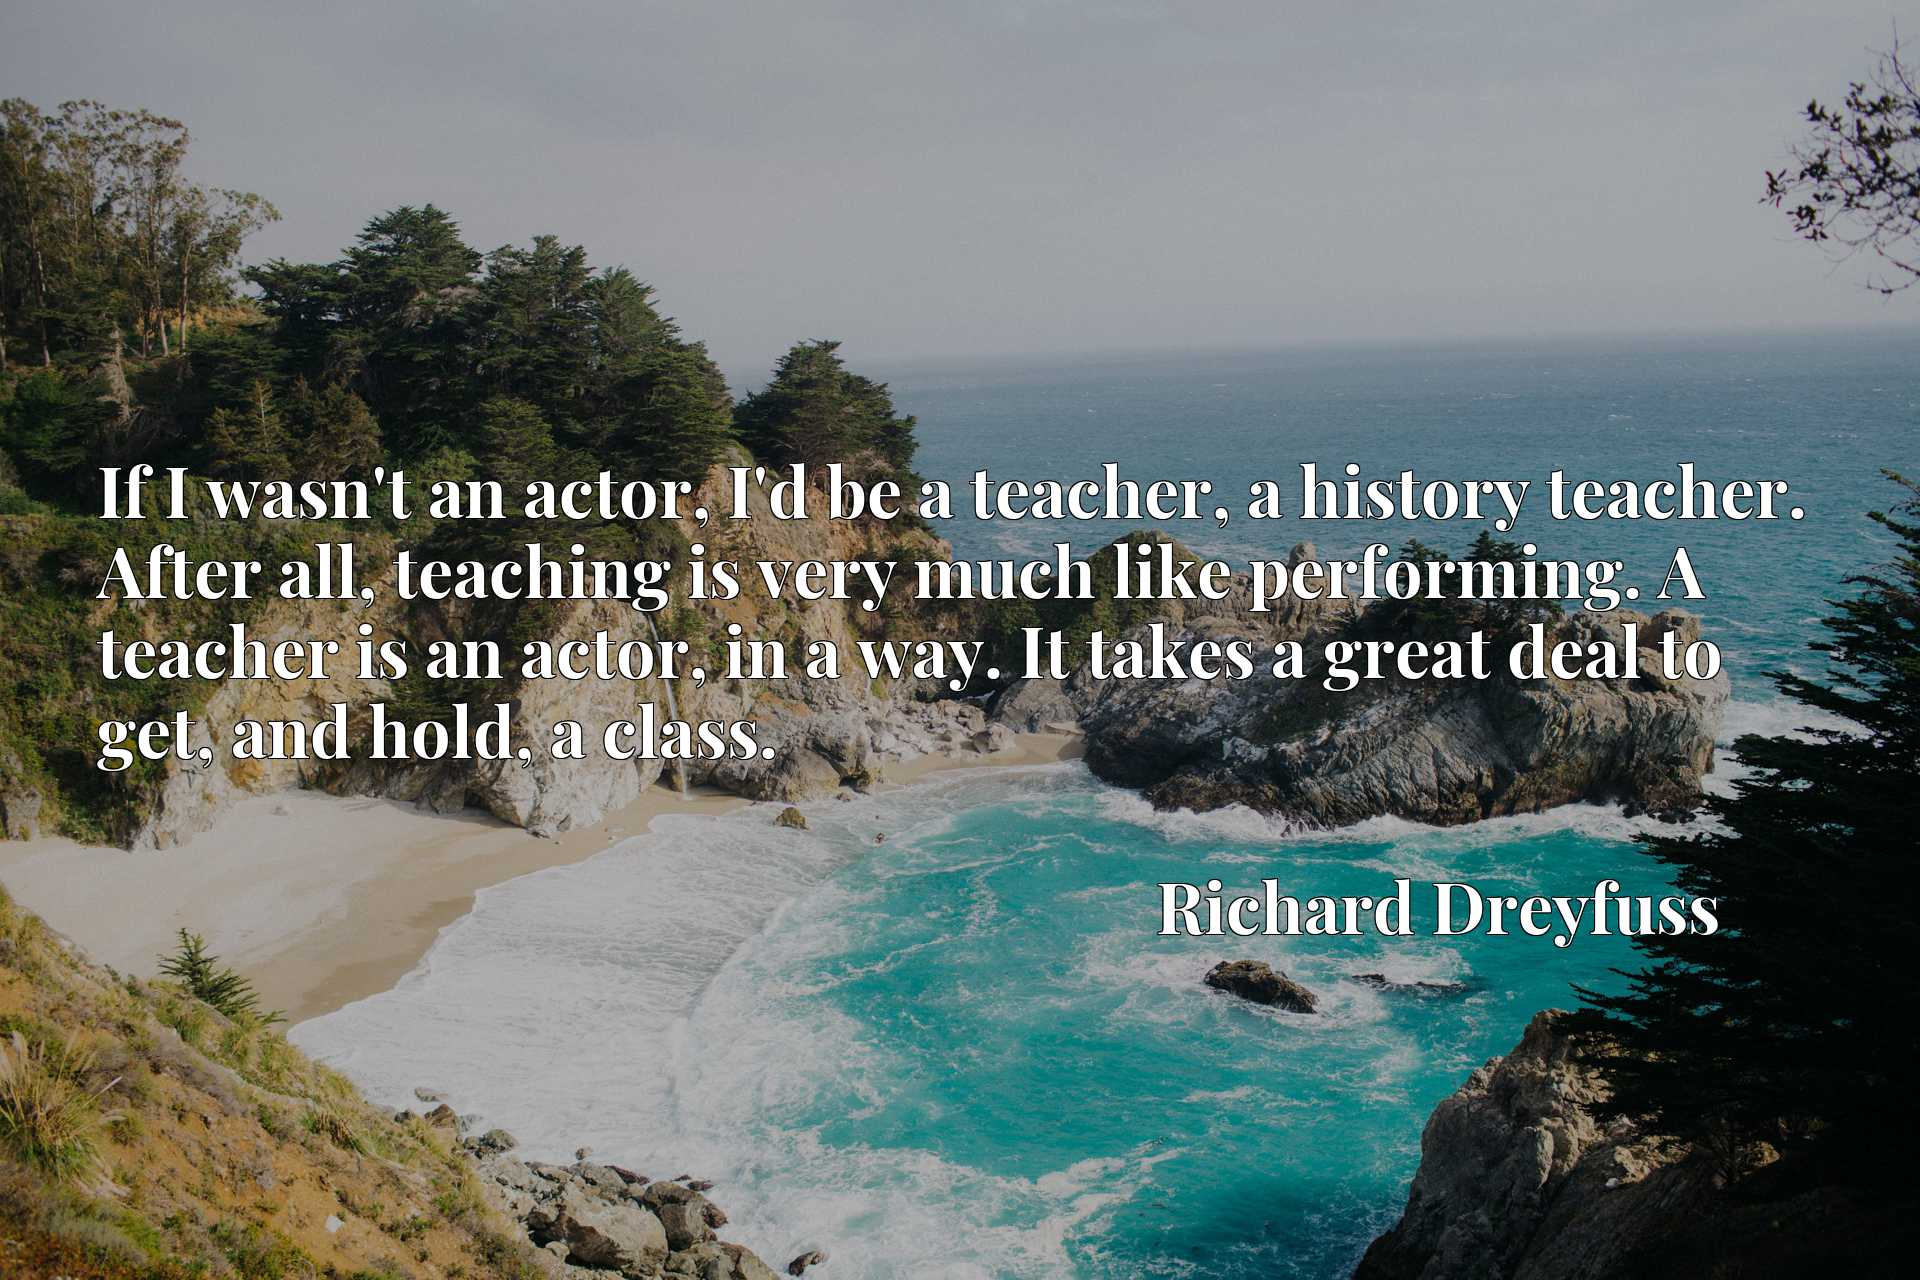 If I wasn't an actor, I'd be a teacher, a history teacher. After all, teaching is very much like performing. A teacher is an actor, in a way. It takes a great deal to get, and hold, a class.